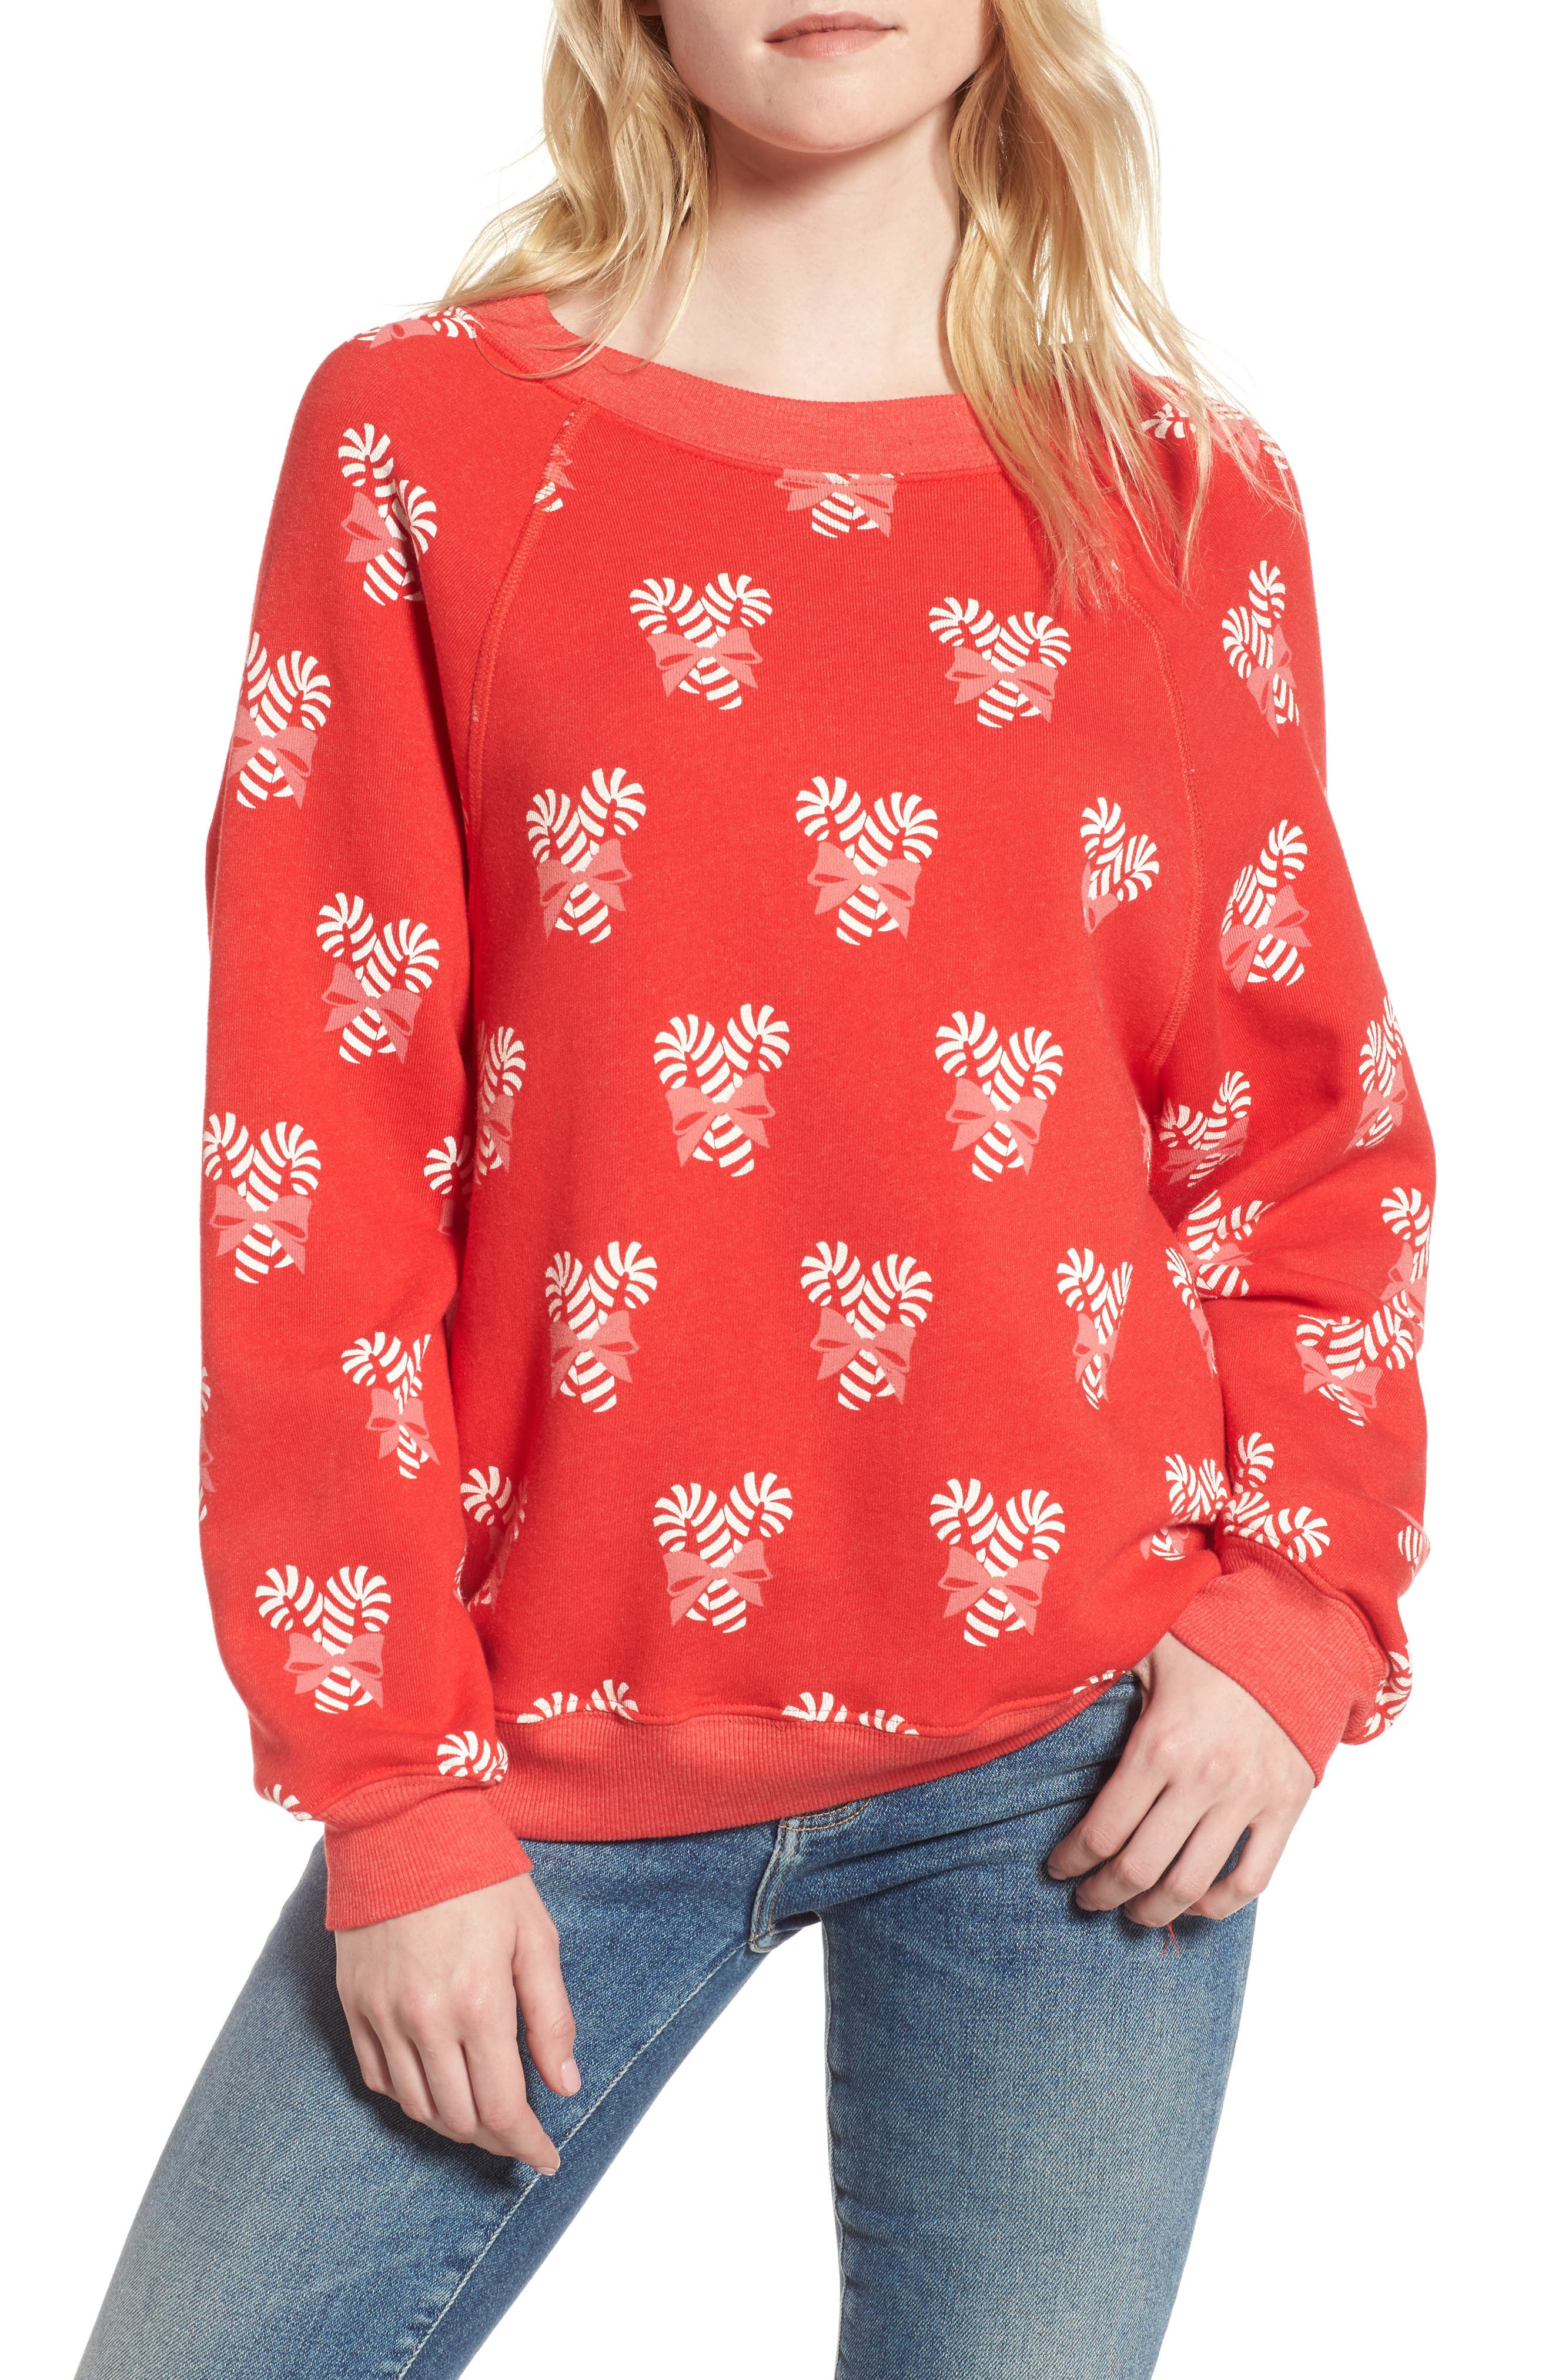 Wildfox Sweet Treat Sweatshirt